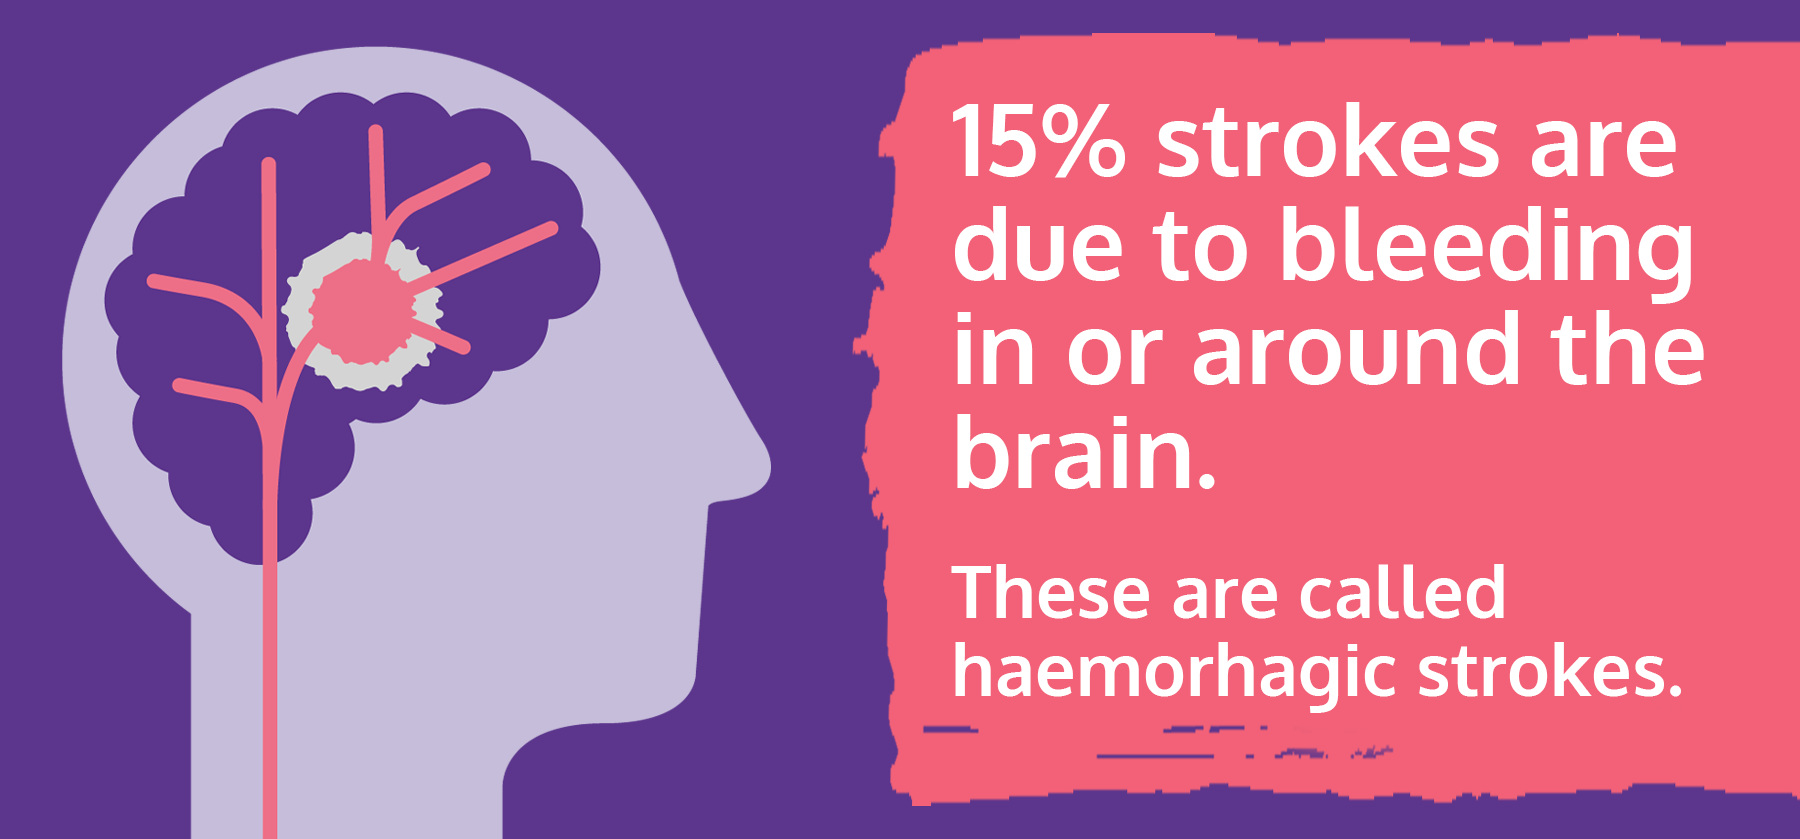 Graphic representation of haemorrhagic stroke by the Stroke Association